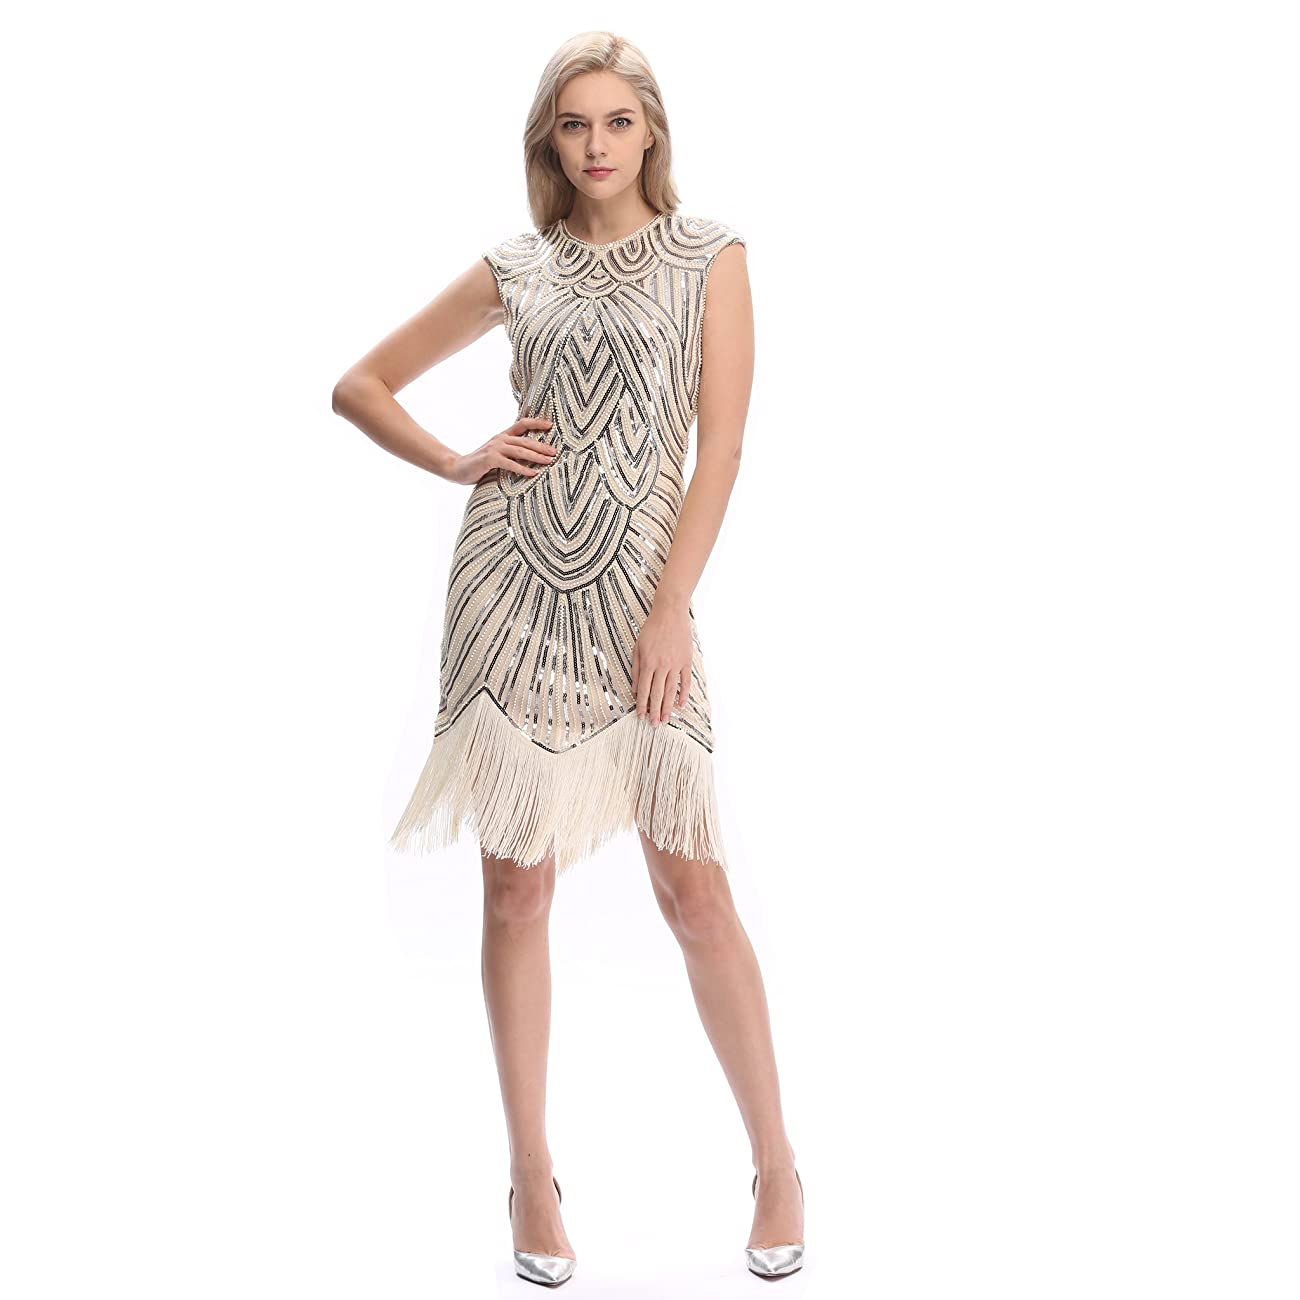 Pilot-trade Women's 1920's Dress Flapper Vintage Great Gatsby Charleston Party Dress 1